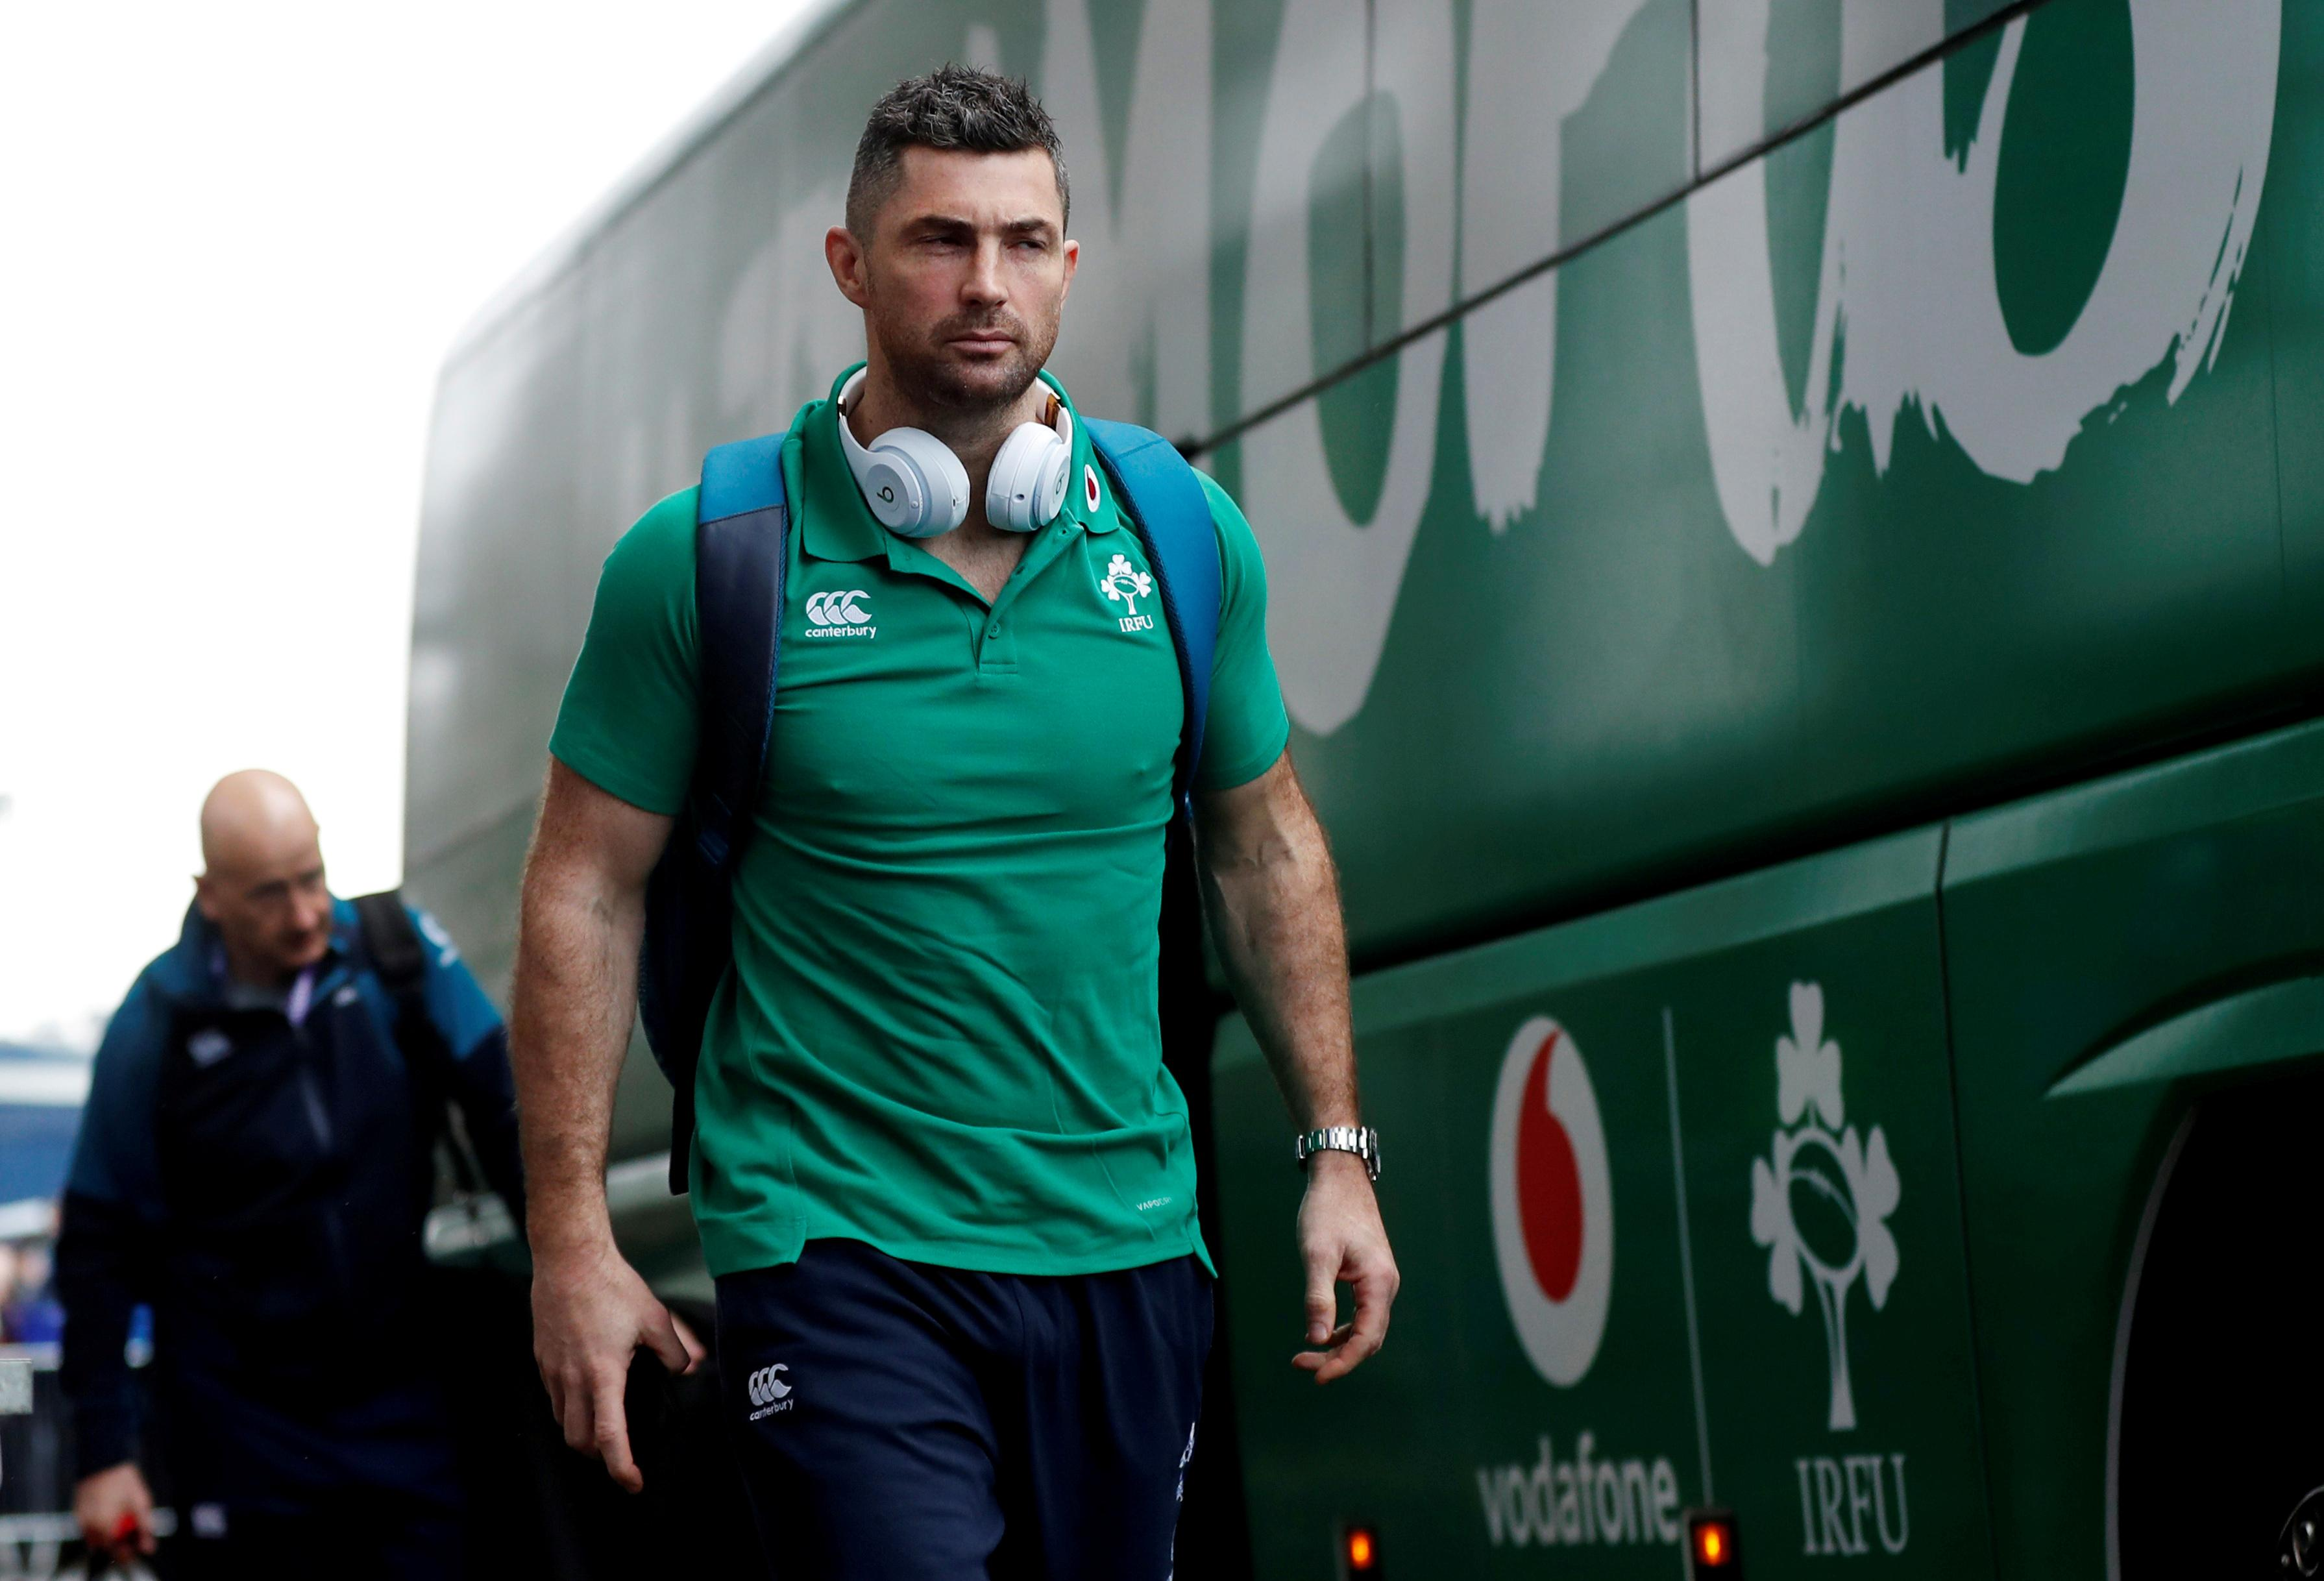 Scots hope to catch Ireland cold in Pool A opener